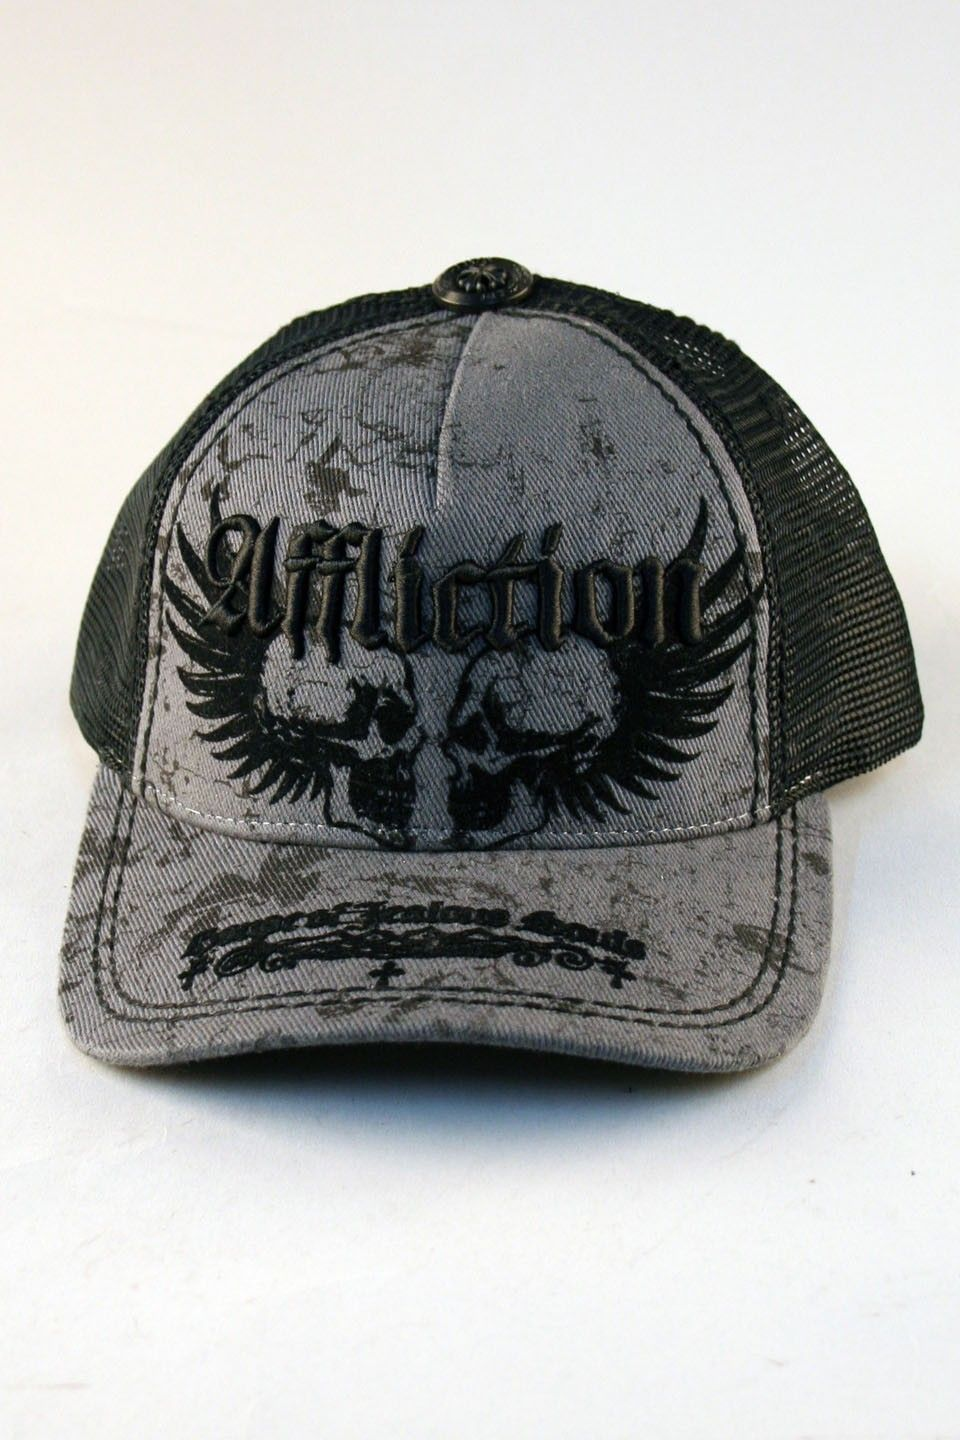 Affliction® Neglect Trucker Hat in Grey for Men and Women Affliction  clothing makes cool alternatives to mens fitted caps including Neglect 6eb70c700b3